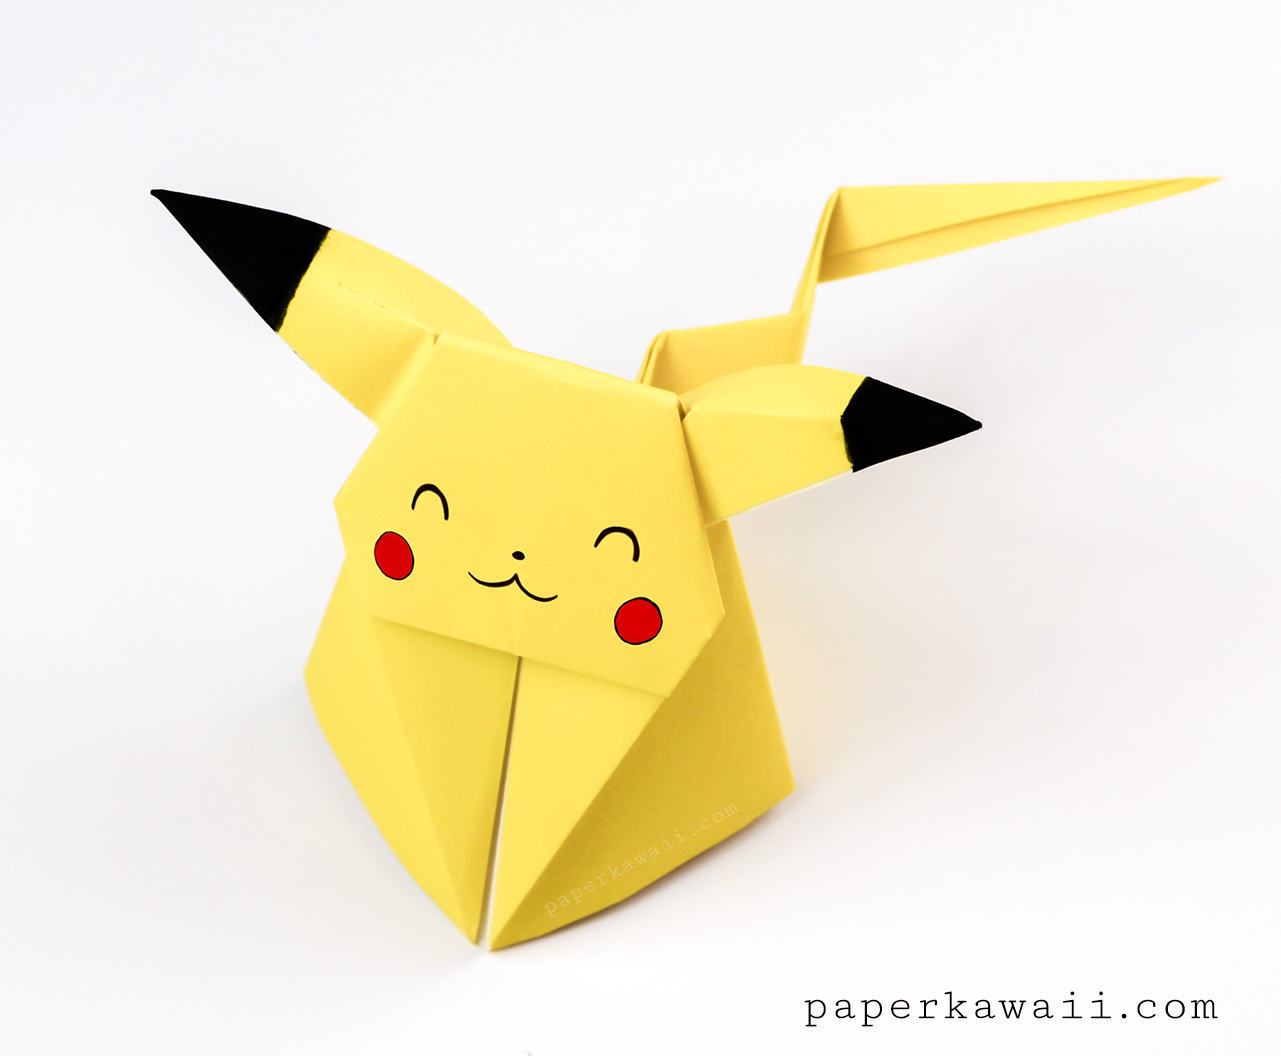 Origami Pikachu Tutorial - Cute Origami Pokemon! - Paper Kawaii on